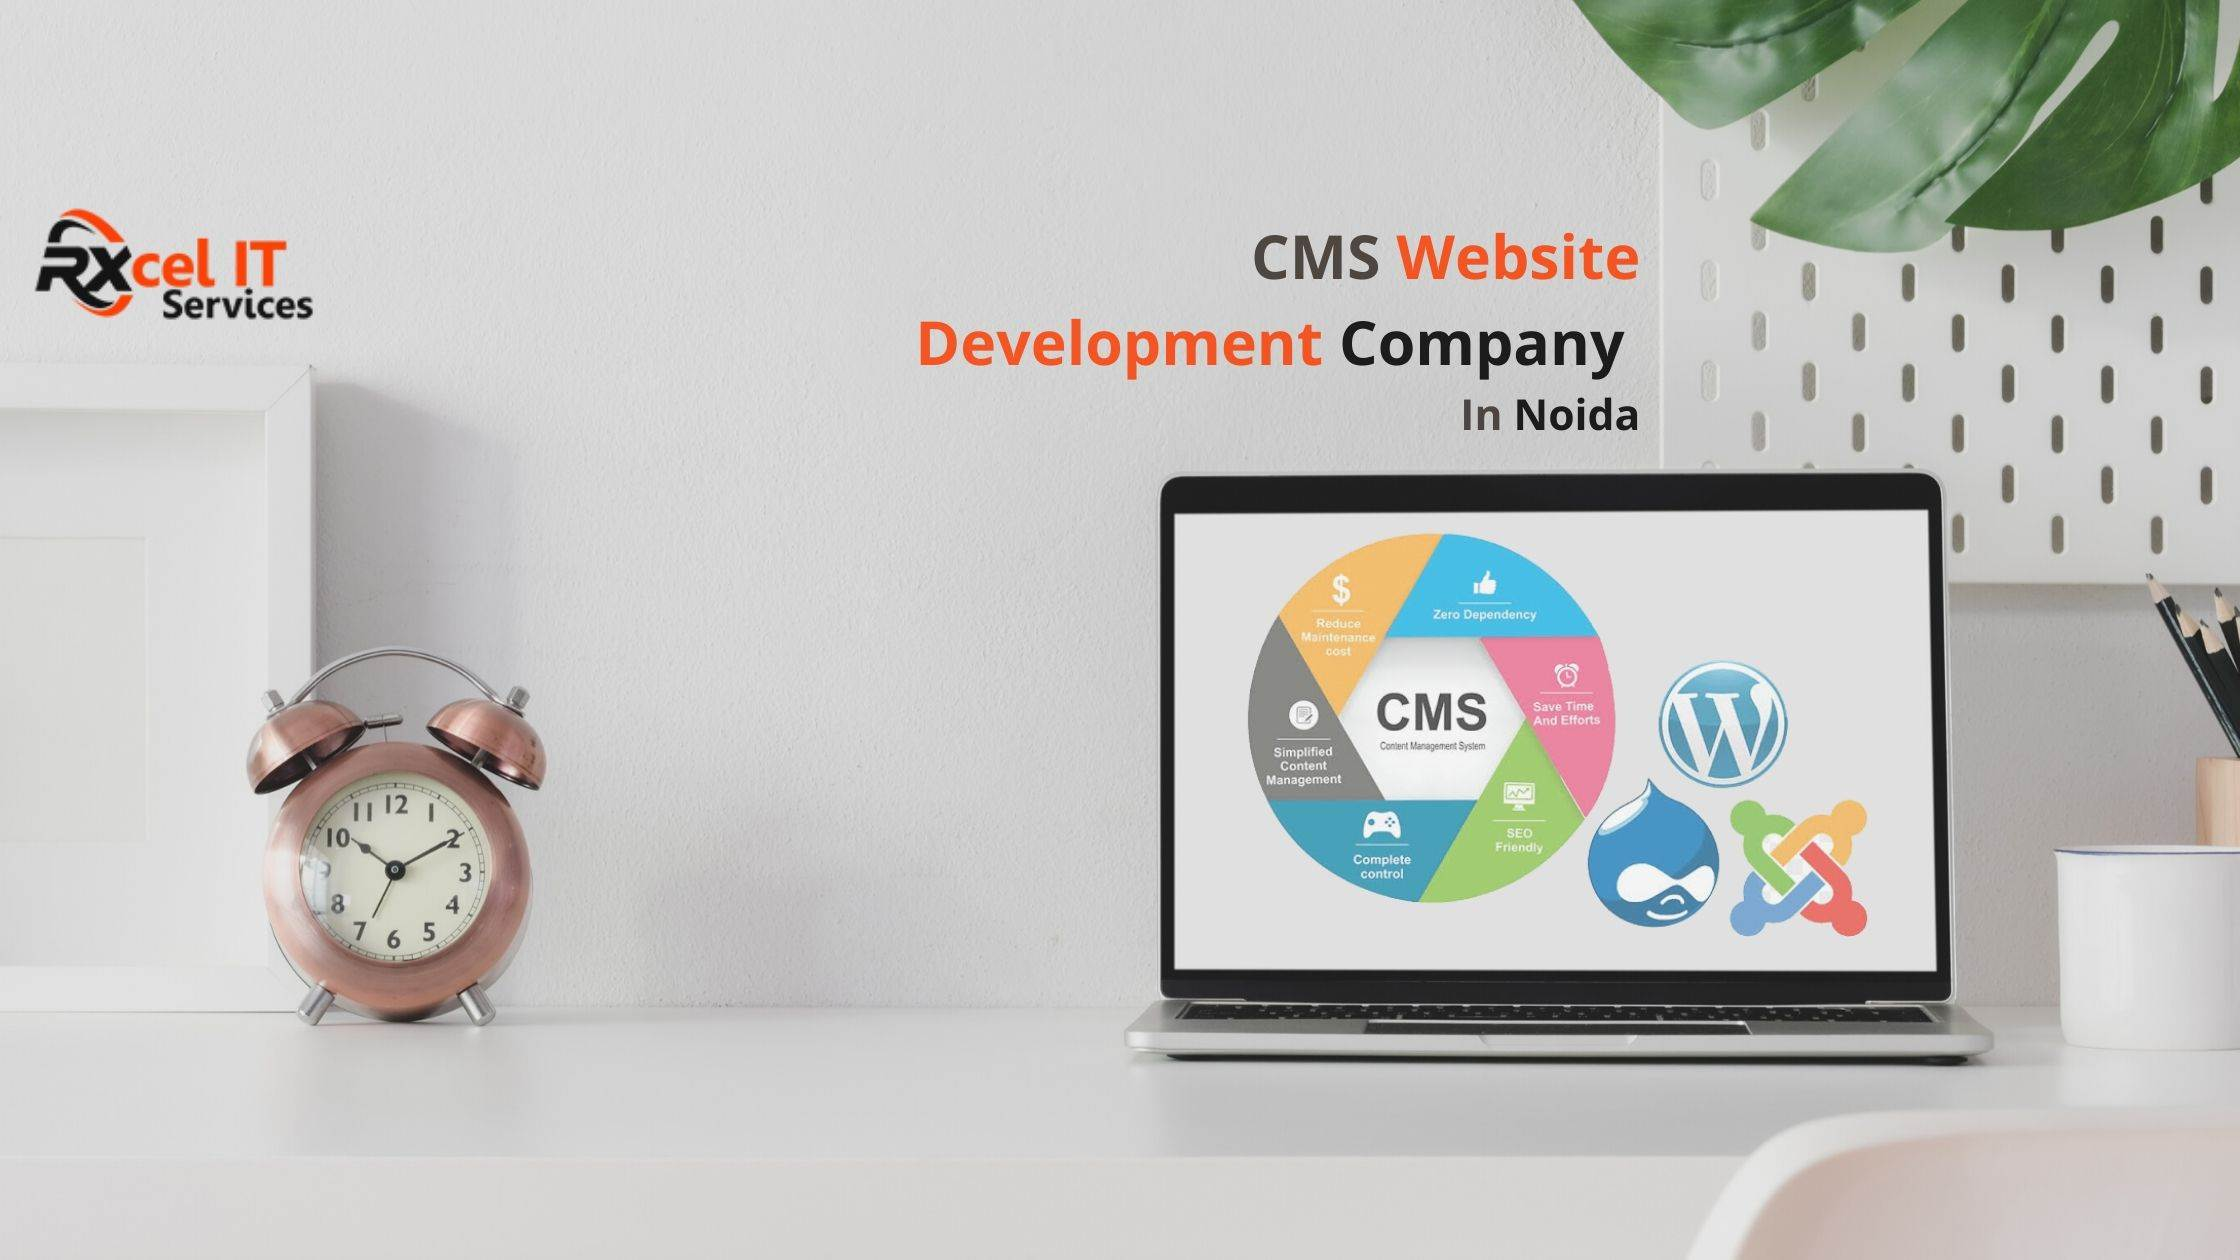 How To Build A Website With CMS? Rexcel IT Services Pvt. Ltd.